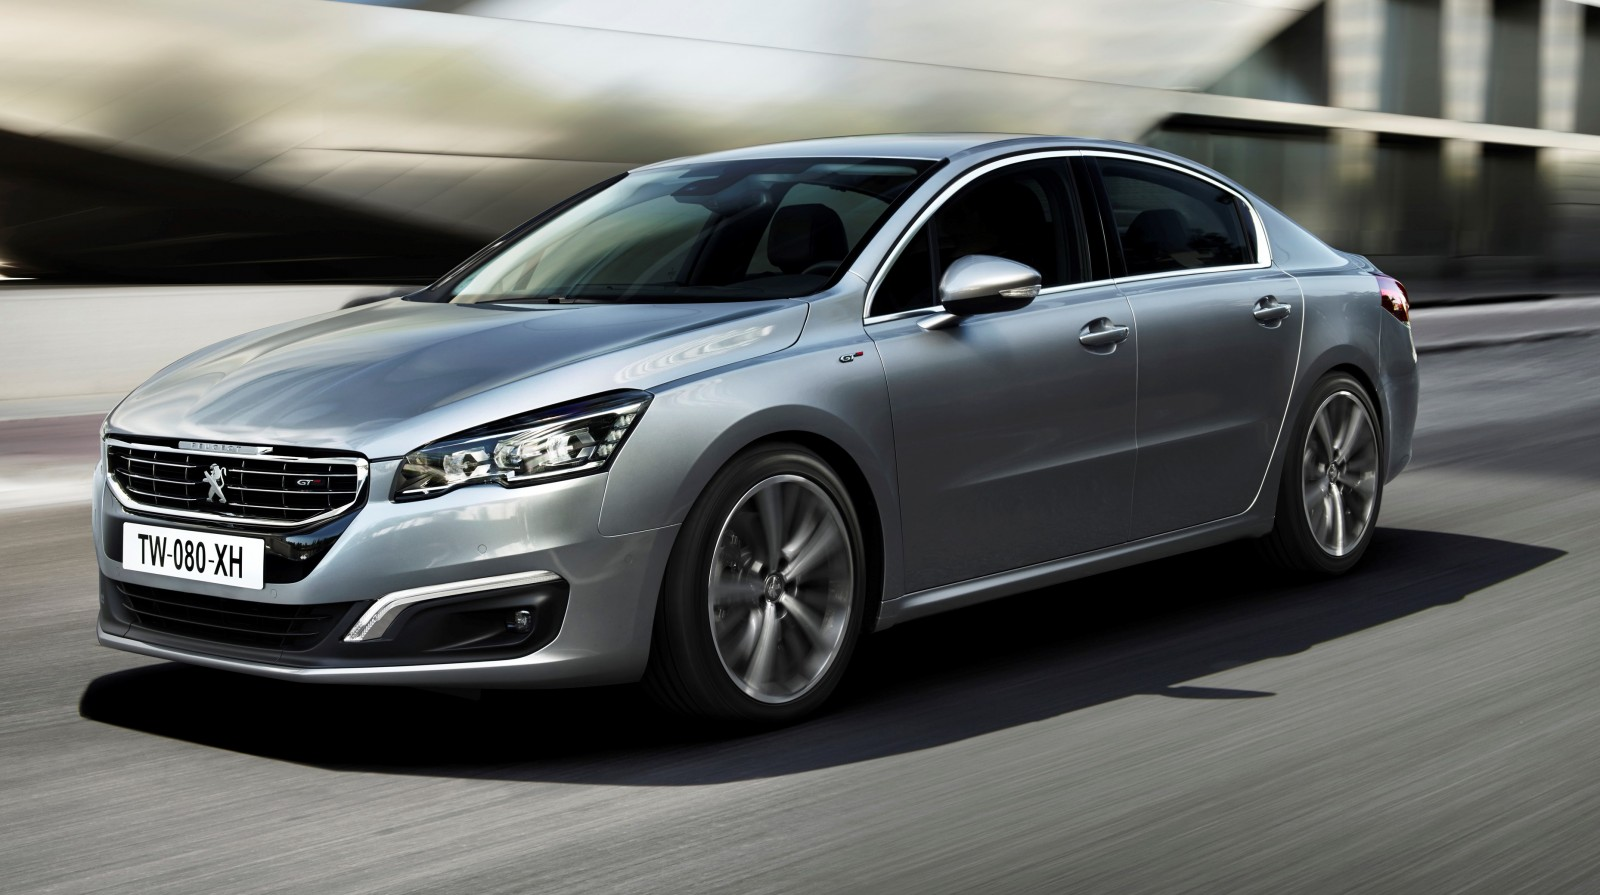 Update2 New Photos - 2015 Peugeot 508 Facelifted With New LED DRLs, Box-Design Beams and Tweaked Cabin Tech 16